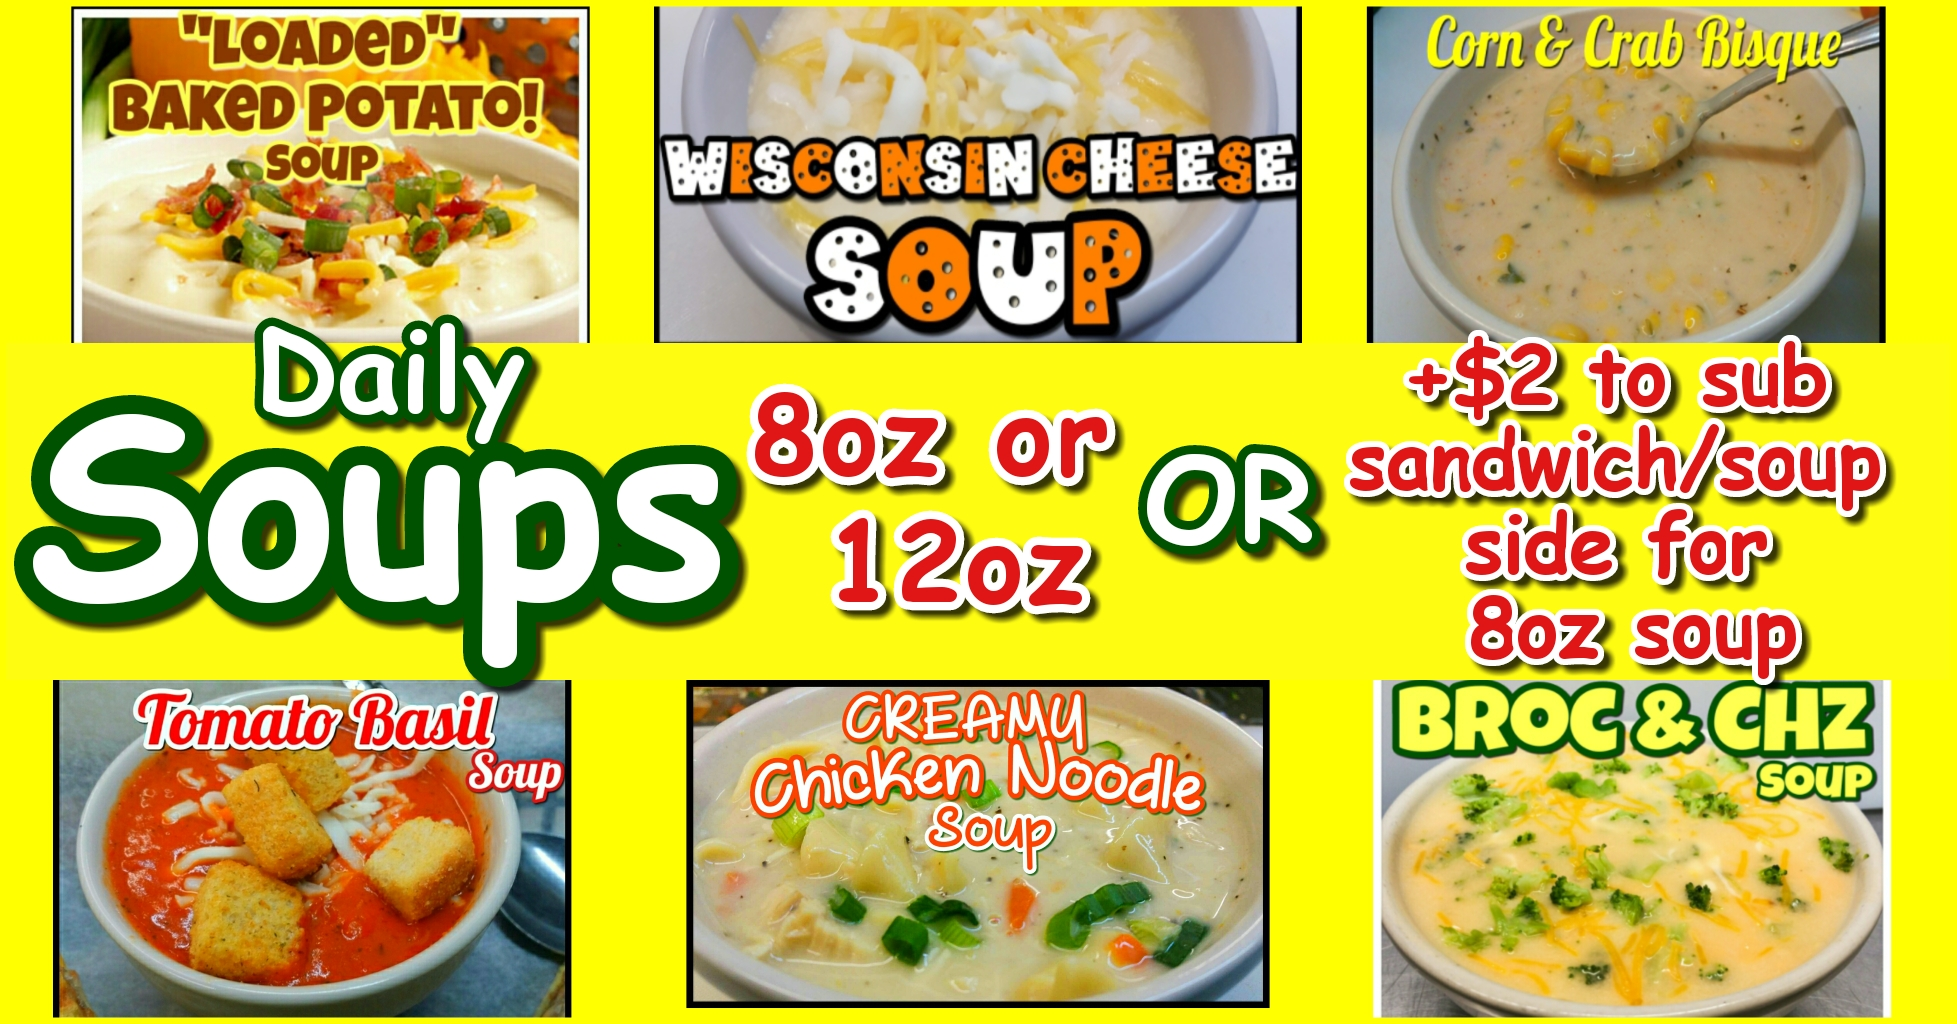 Daily soups!